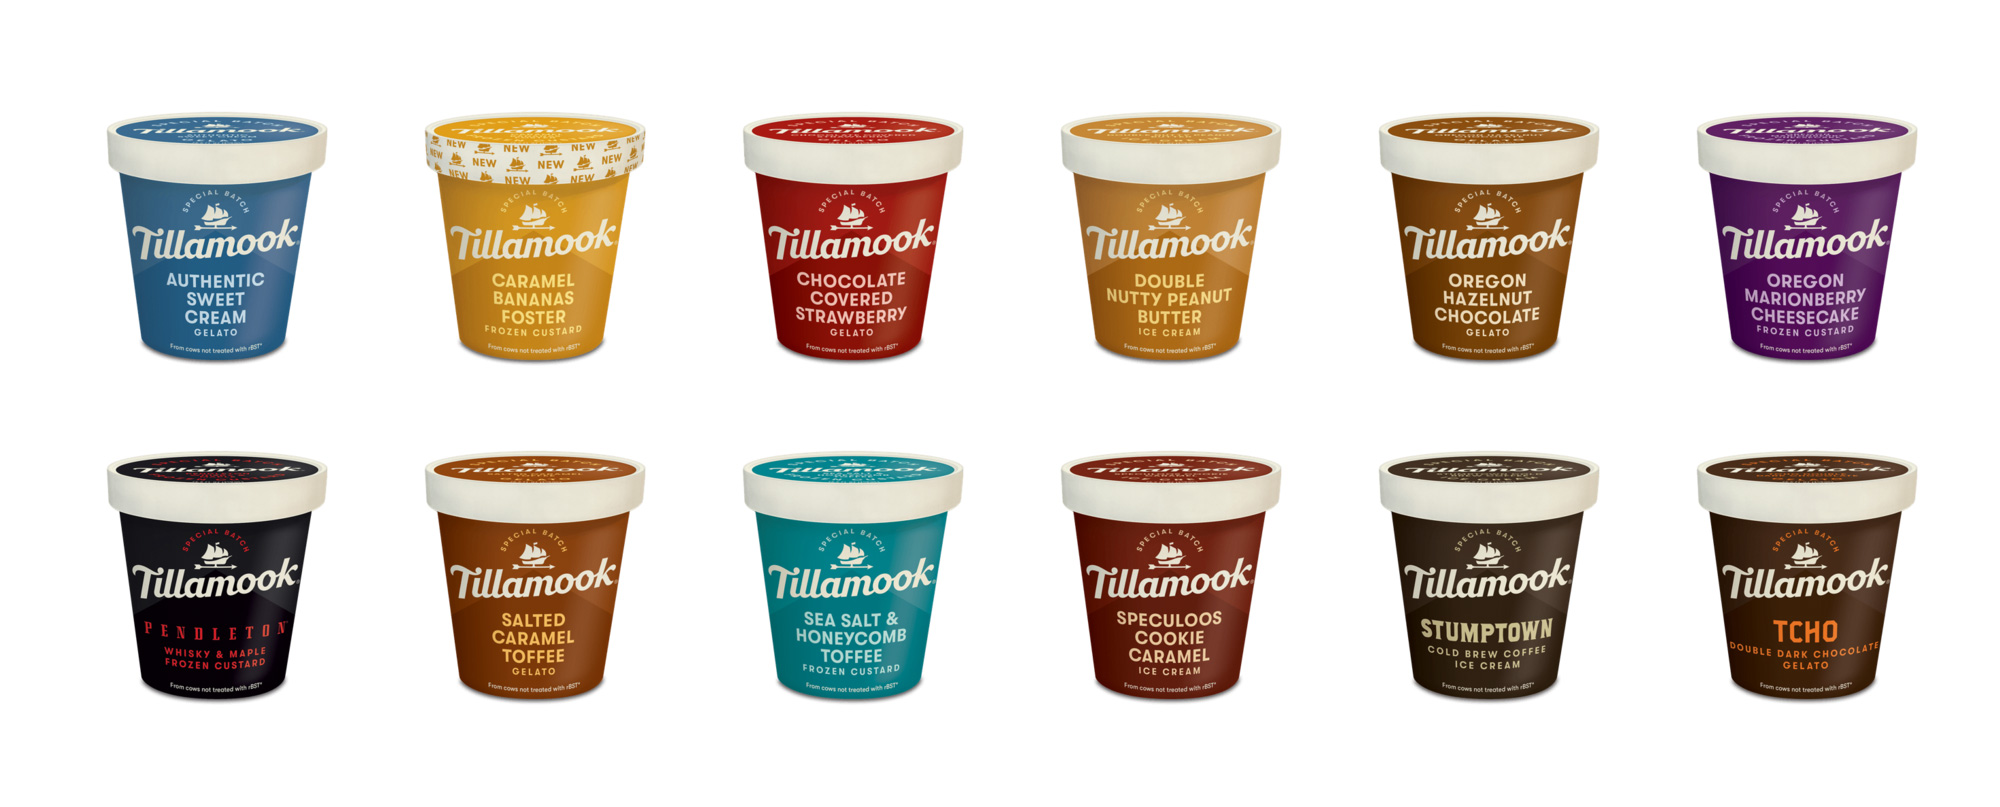 New Logo and Packaging for Tillamook by Turner Duckworth